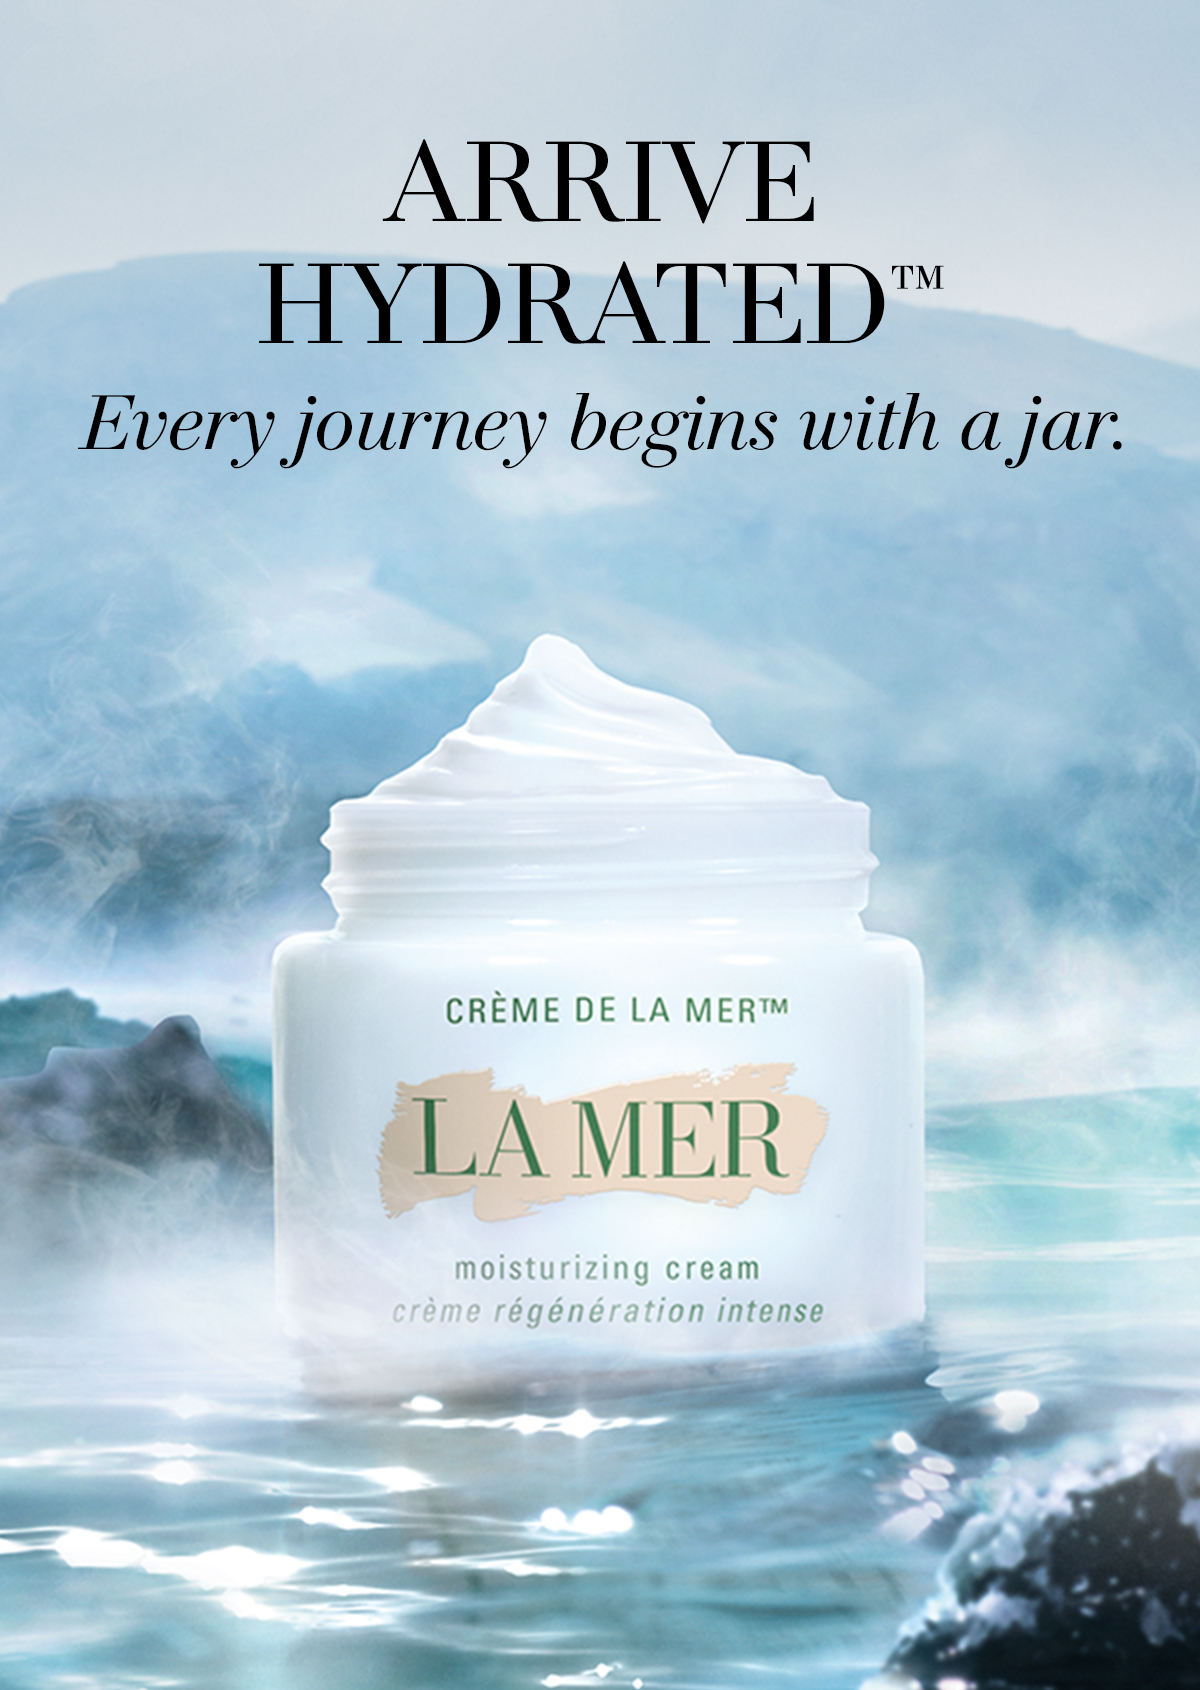 Arrive Hydrated Every journey begins with a jar.